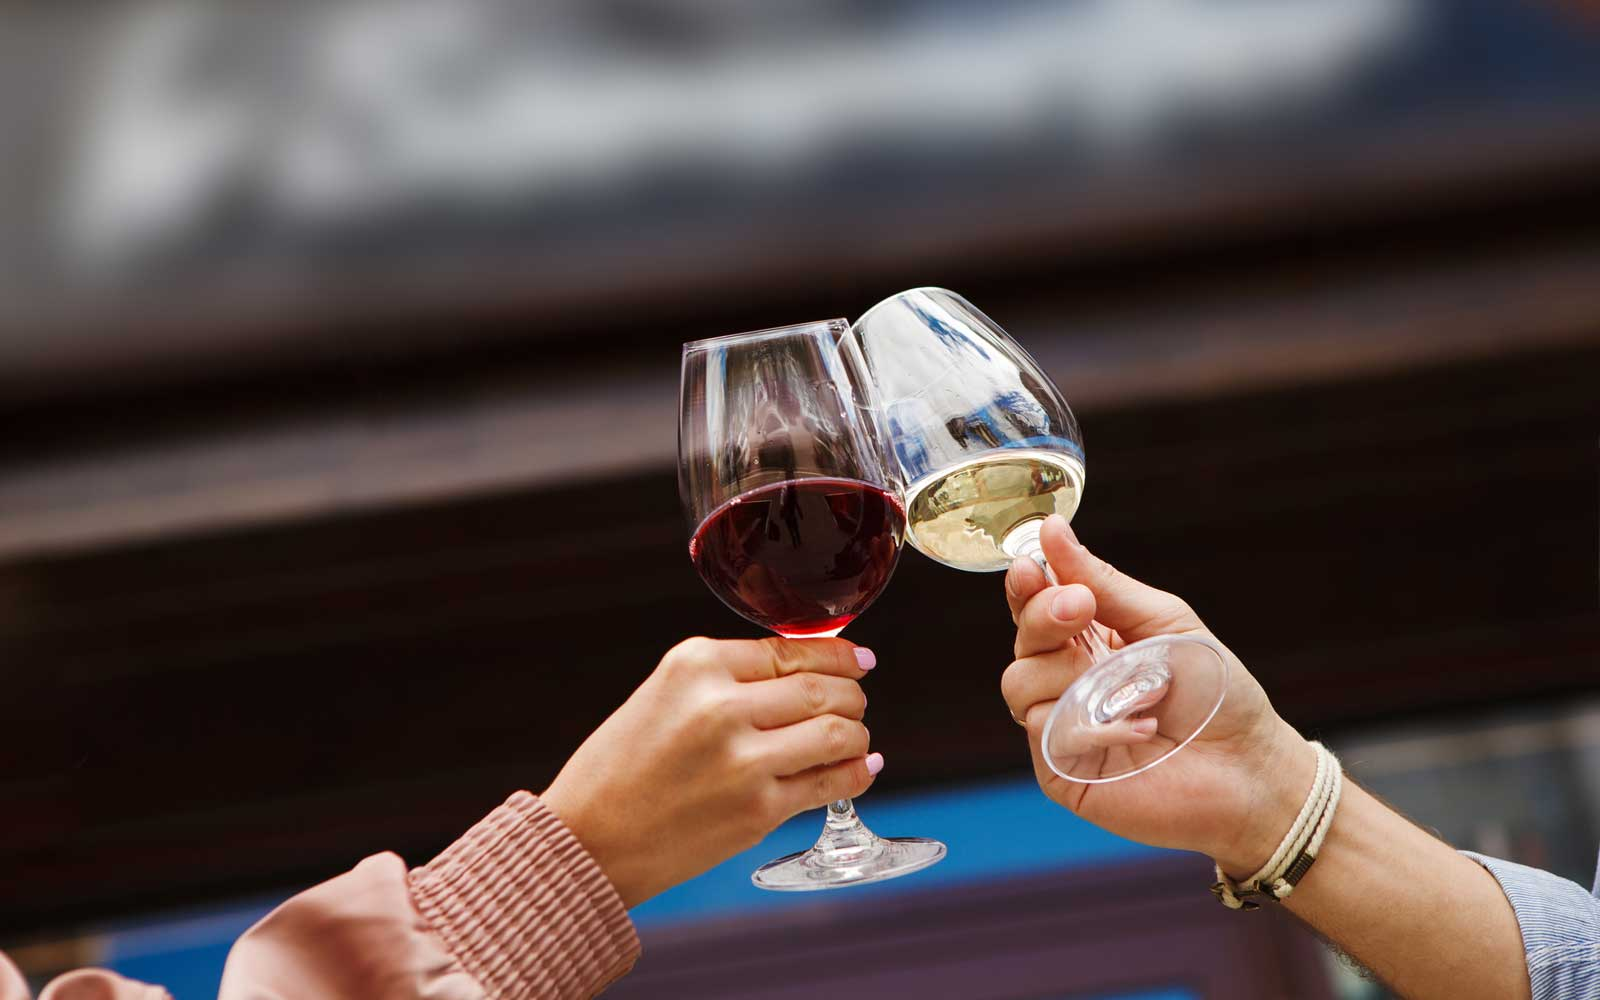 Red or White Wine, What it Says About You